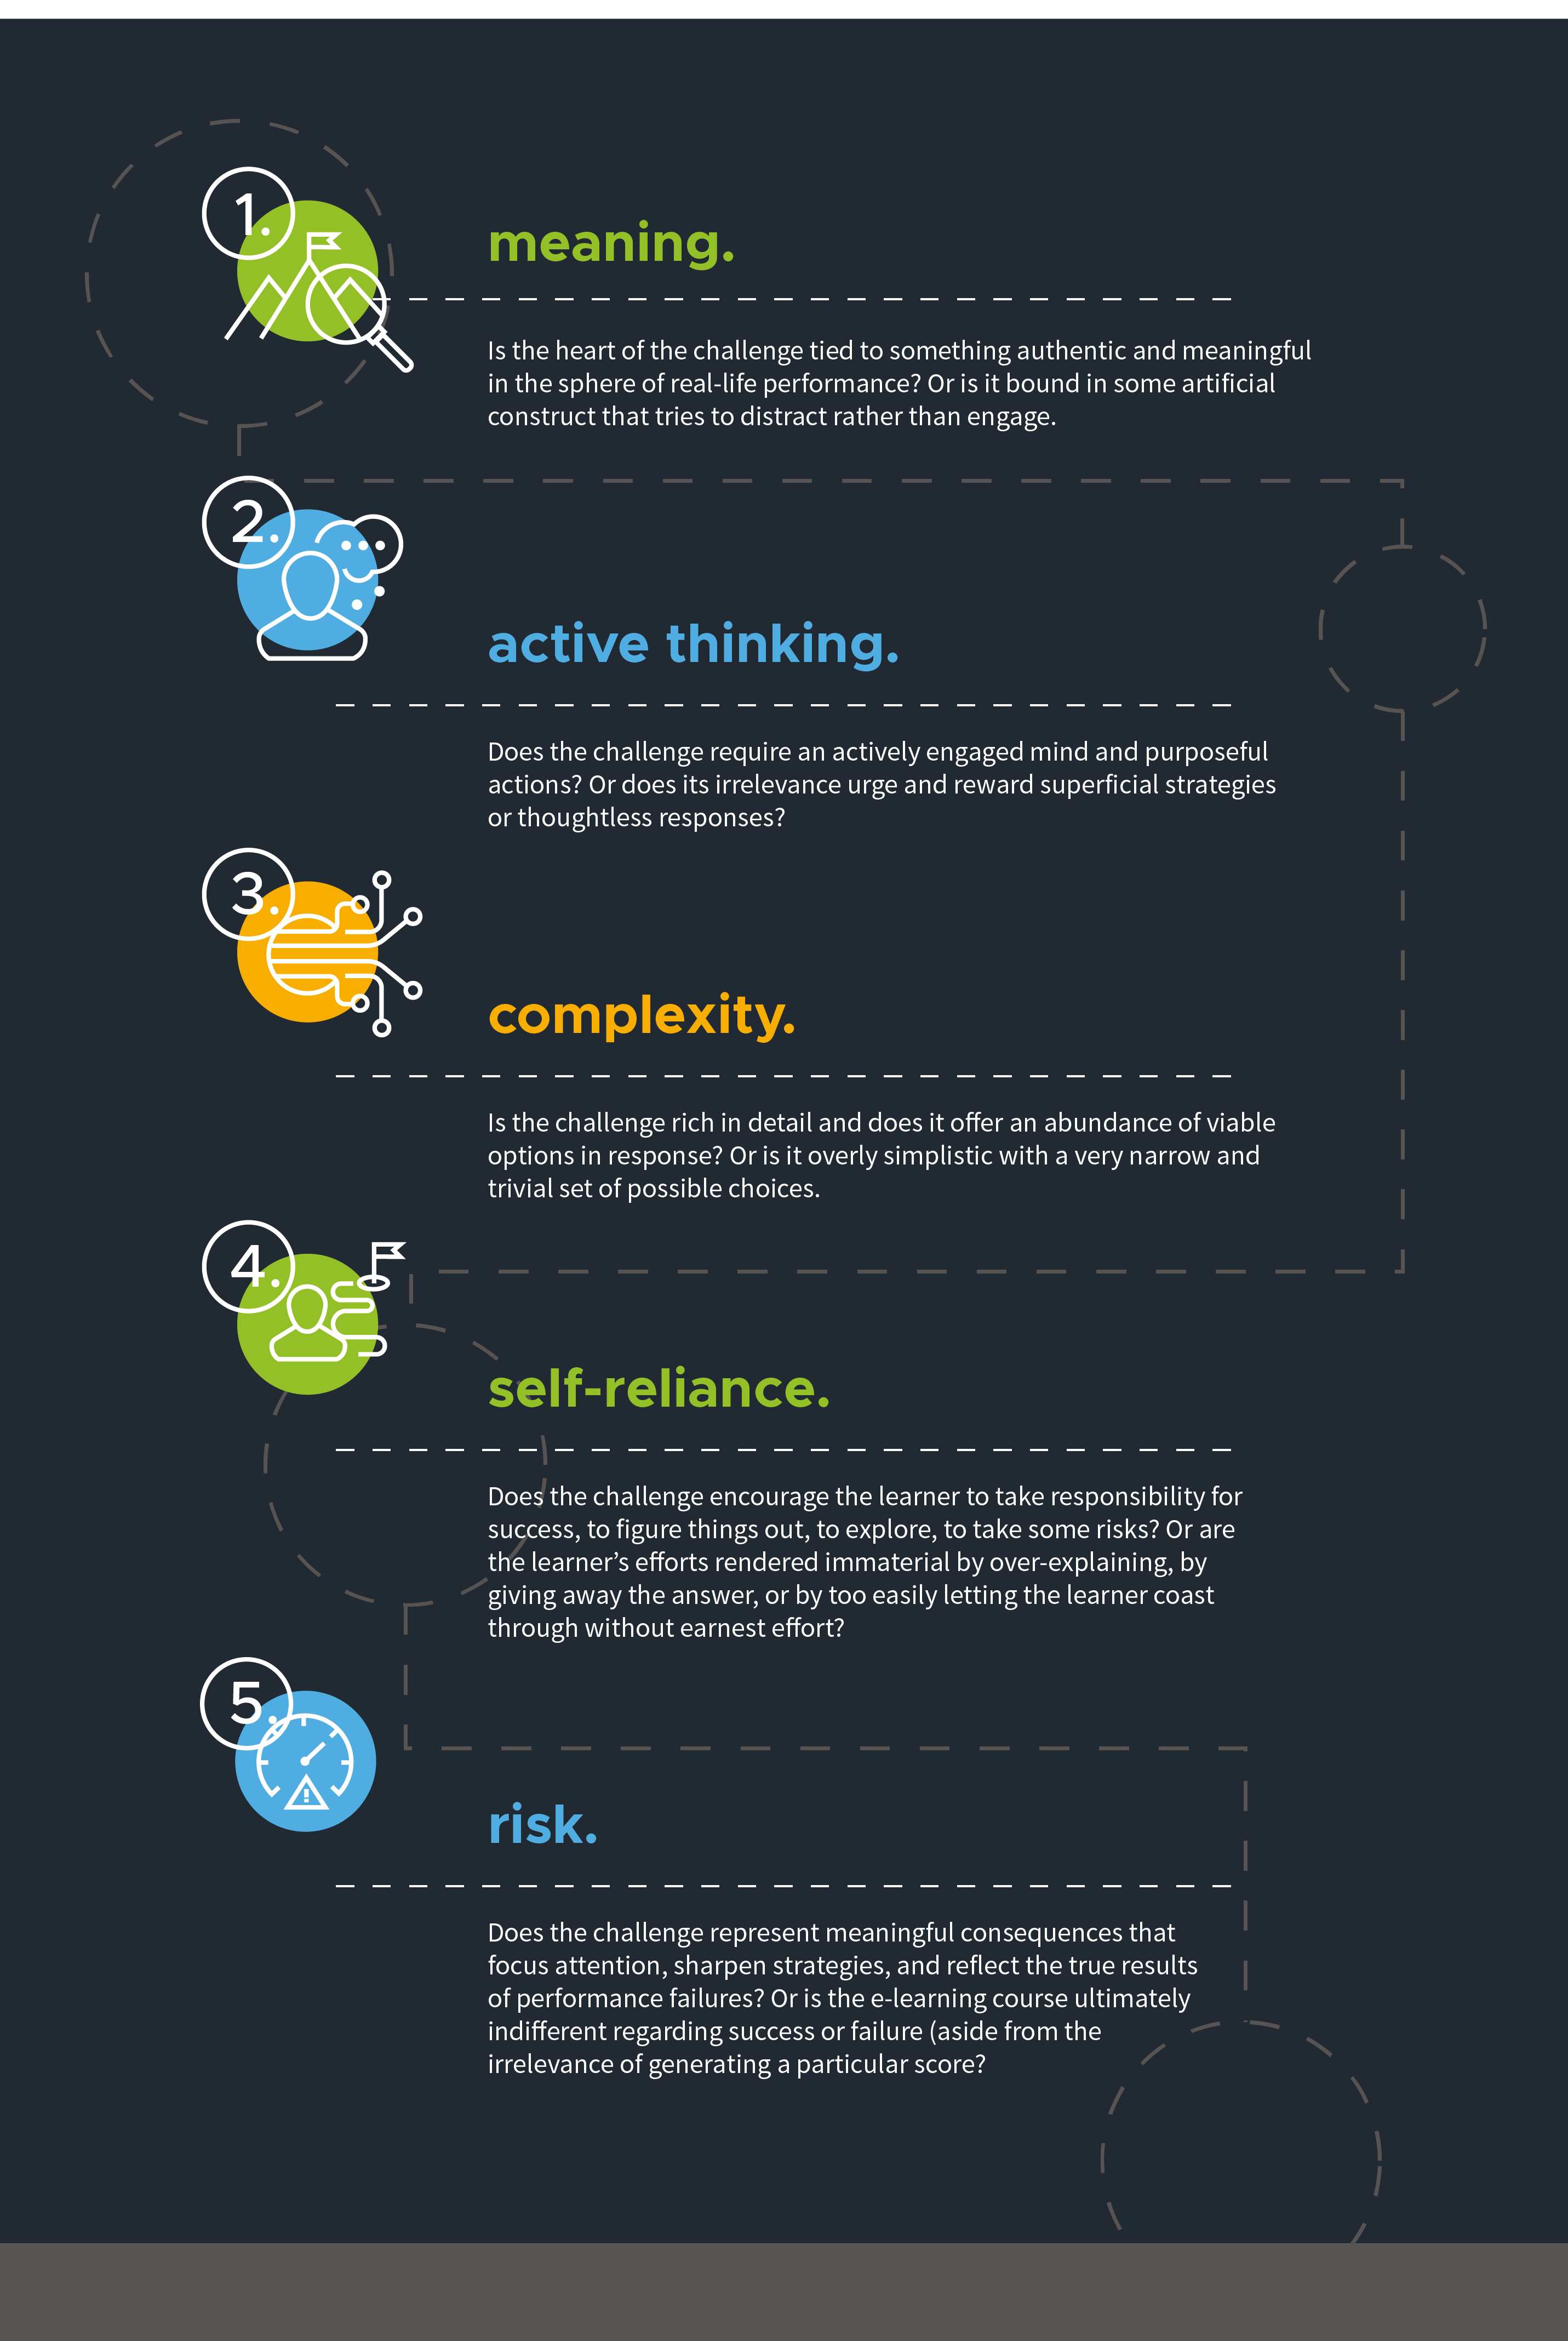 AI_infographic_5-elements_custom_elearning_challenges_blog